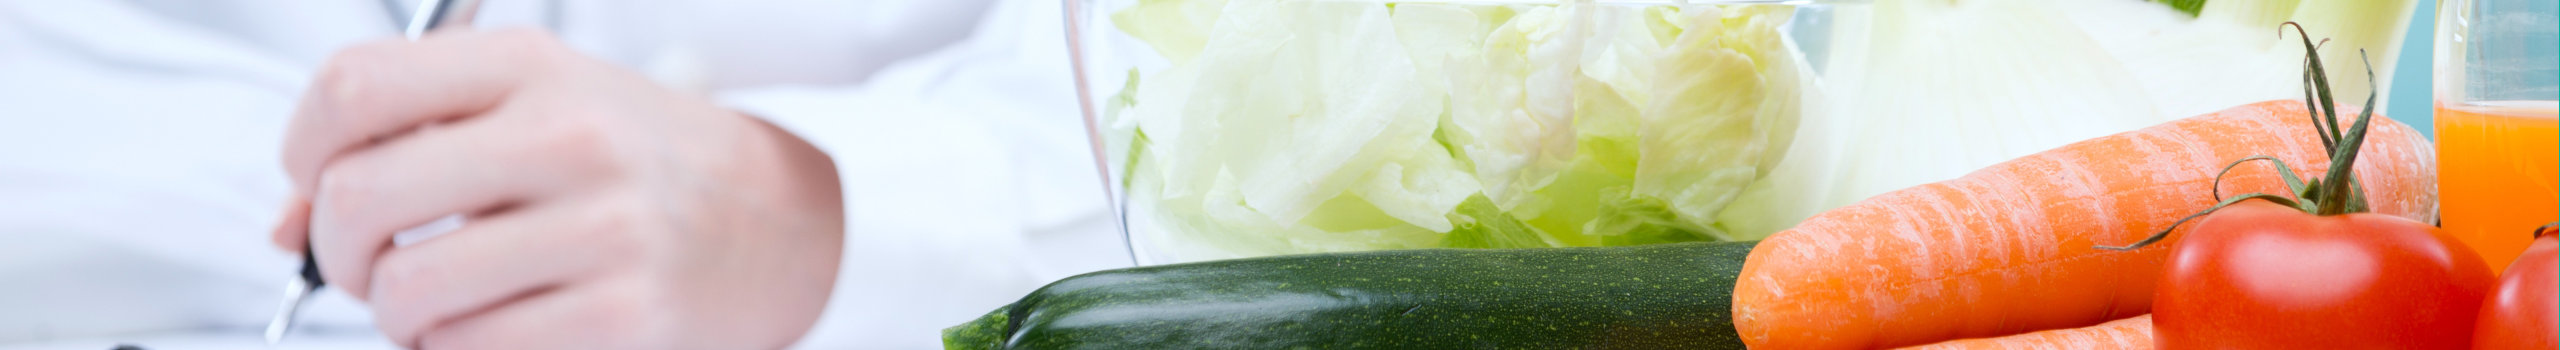 nutritional counselling header